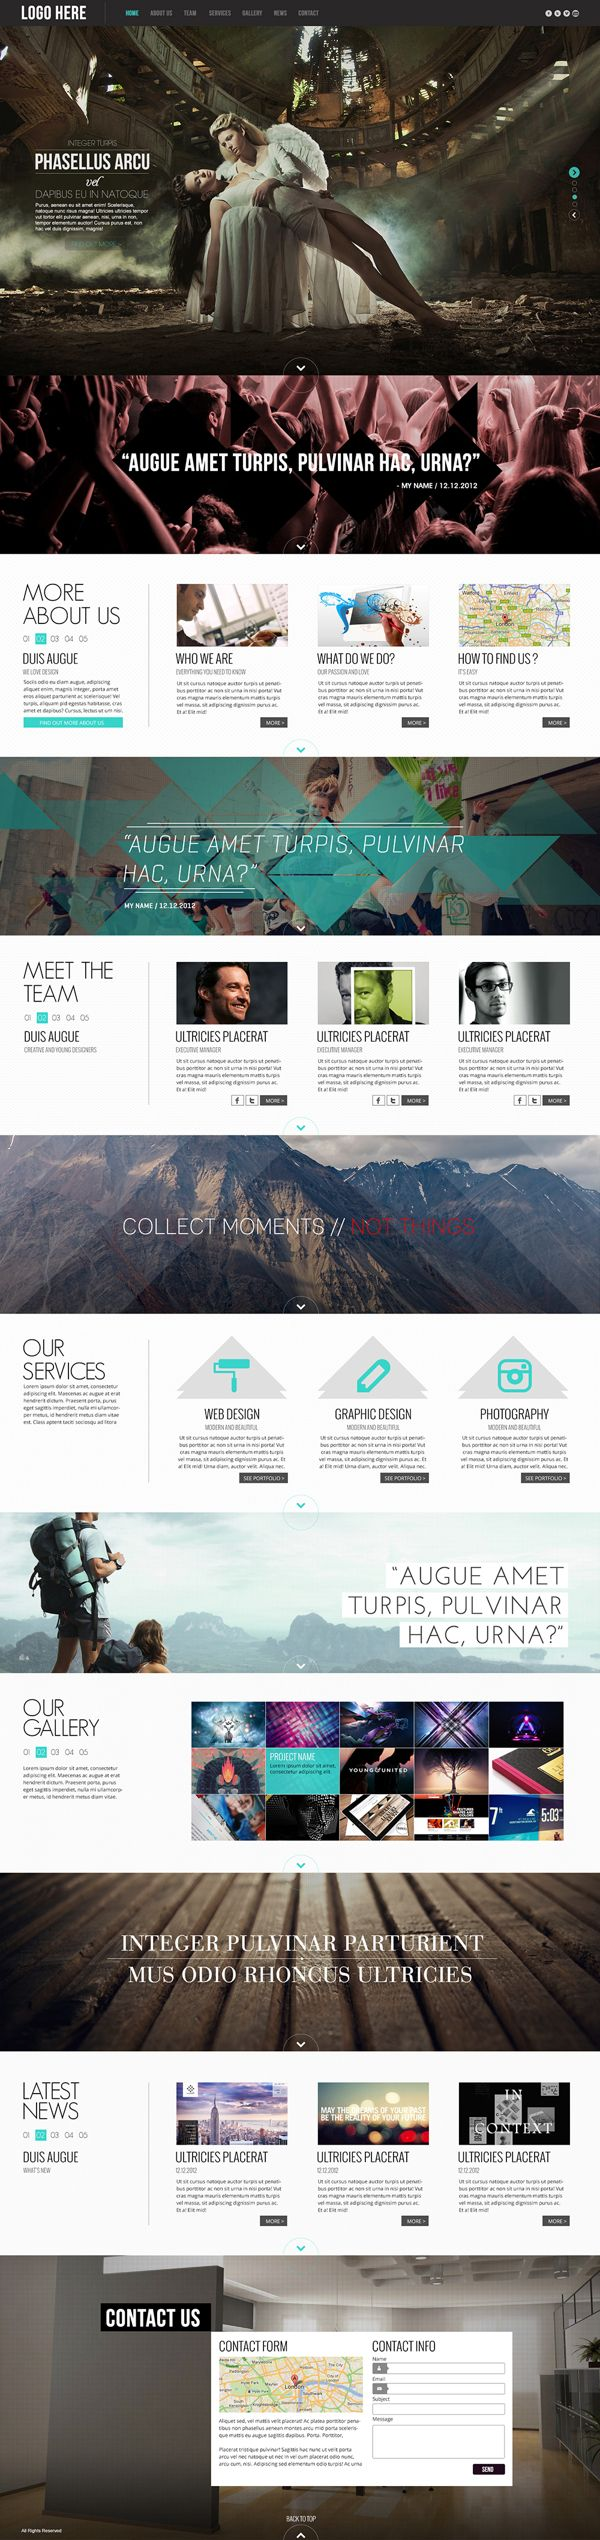 Pulsar - One Page #HTML5 Parallax #Website Template by AVAThemes, via #Behance